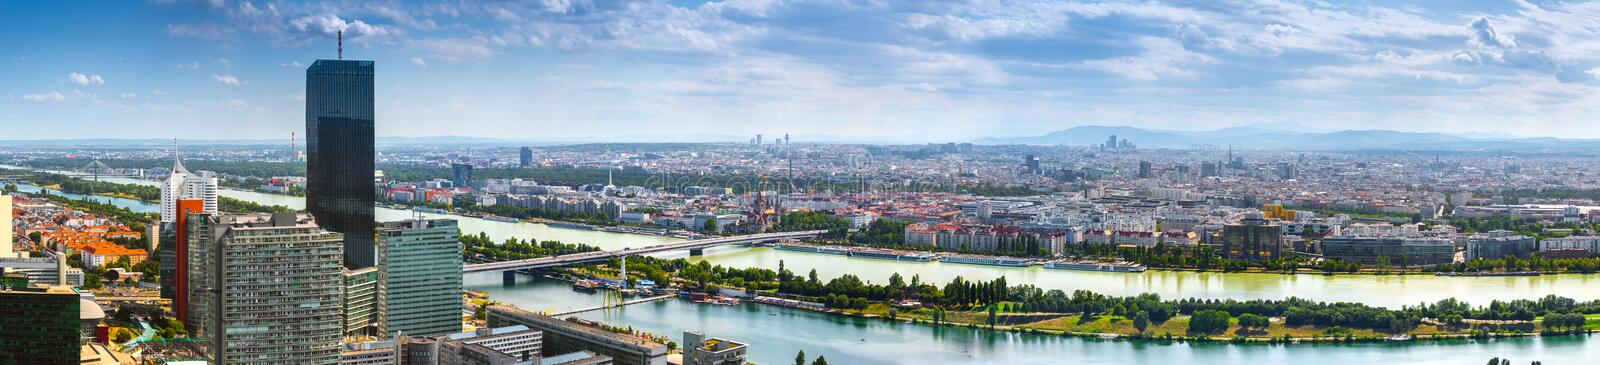 Stunning aerial panoramic cityscape view austrian capital city of Vienna.  Modern glass-concrete skyscrapers in the ancient city stock photography